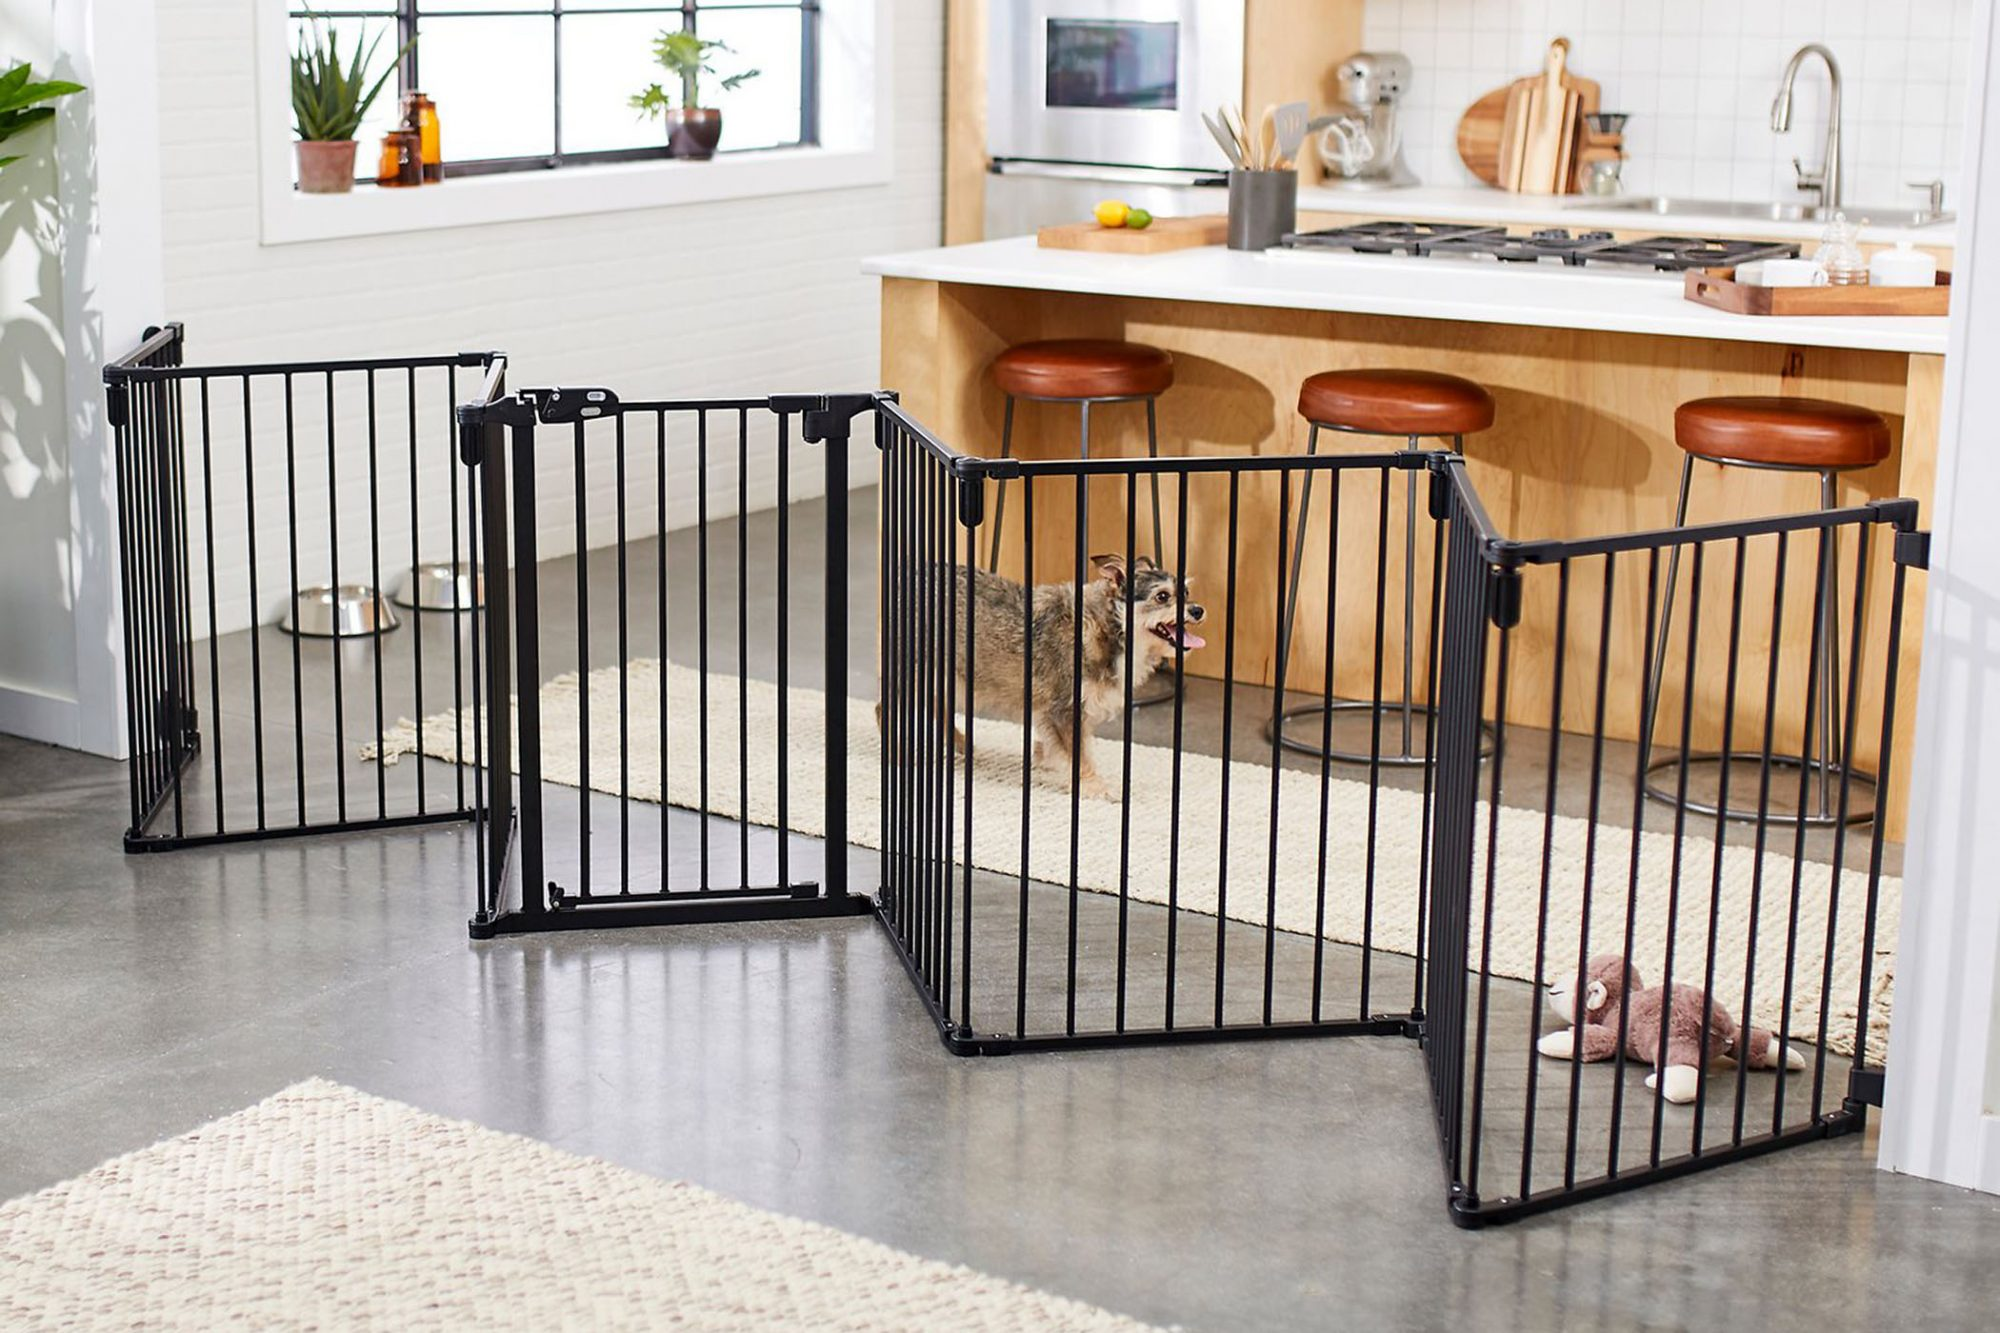 portable dog fence in kitchen